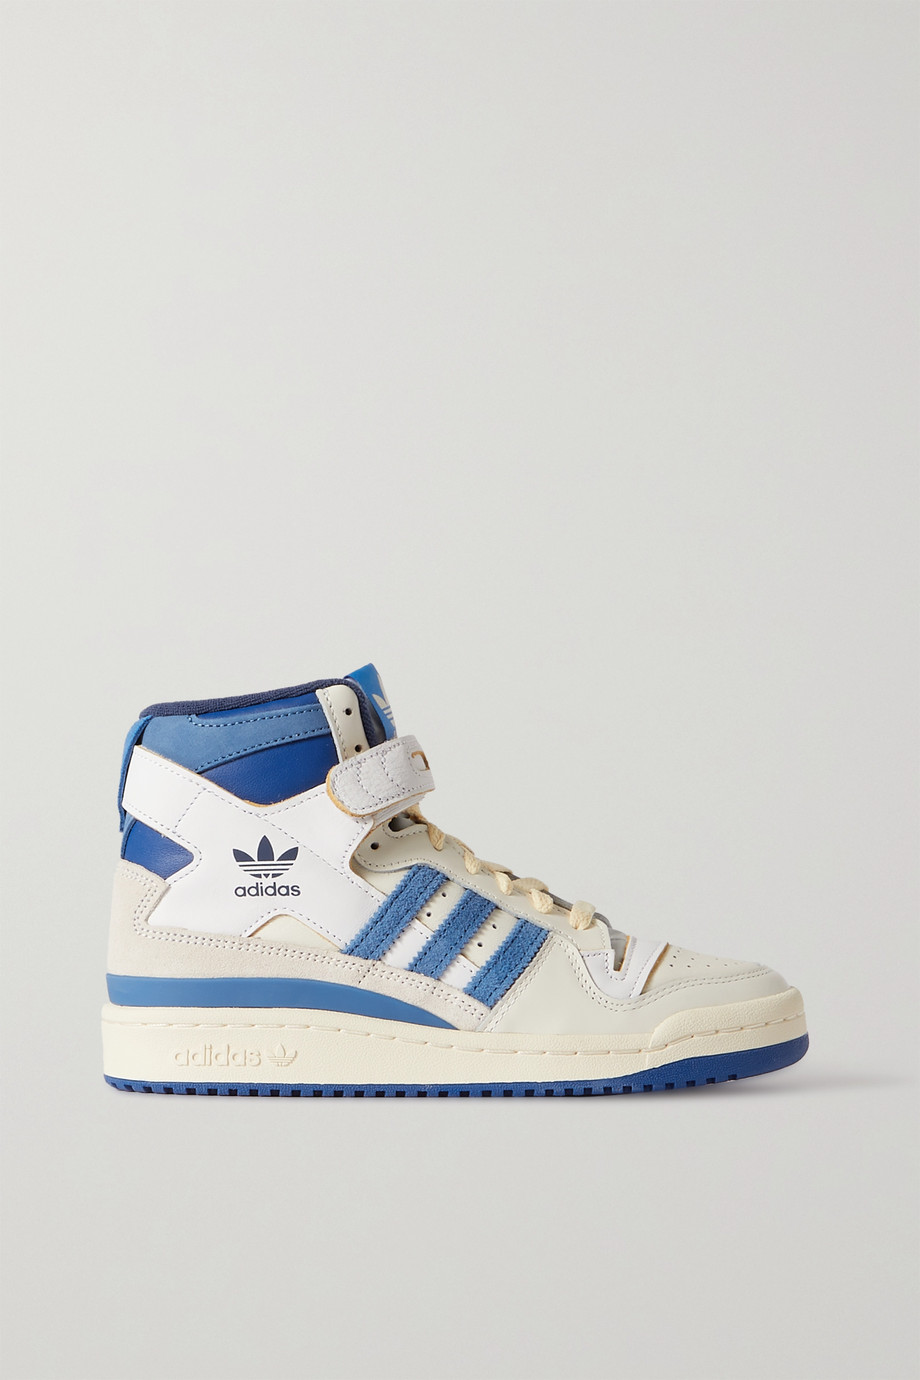 adidas Originals OG Forum 84 leather and suede high top sneakers